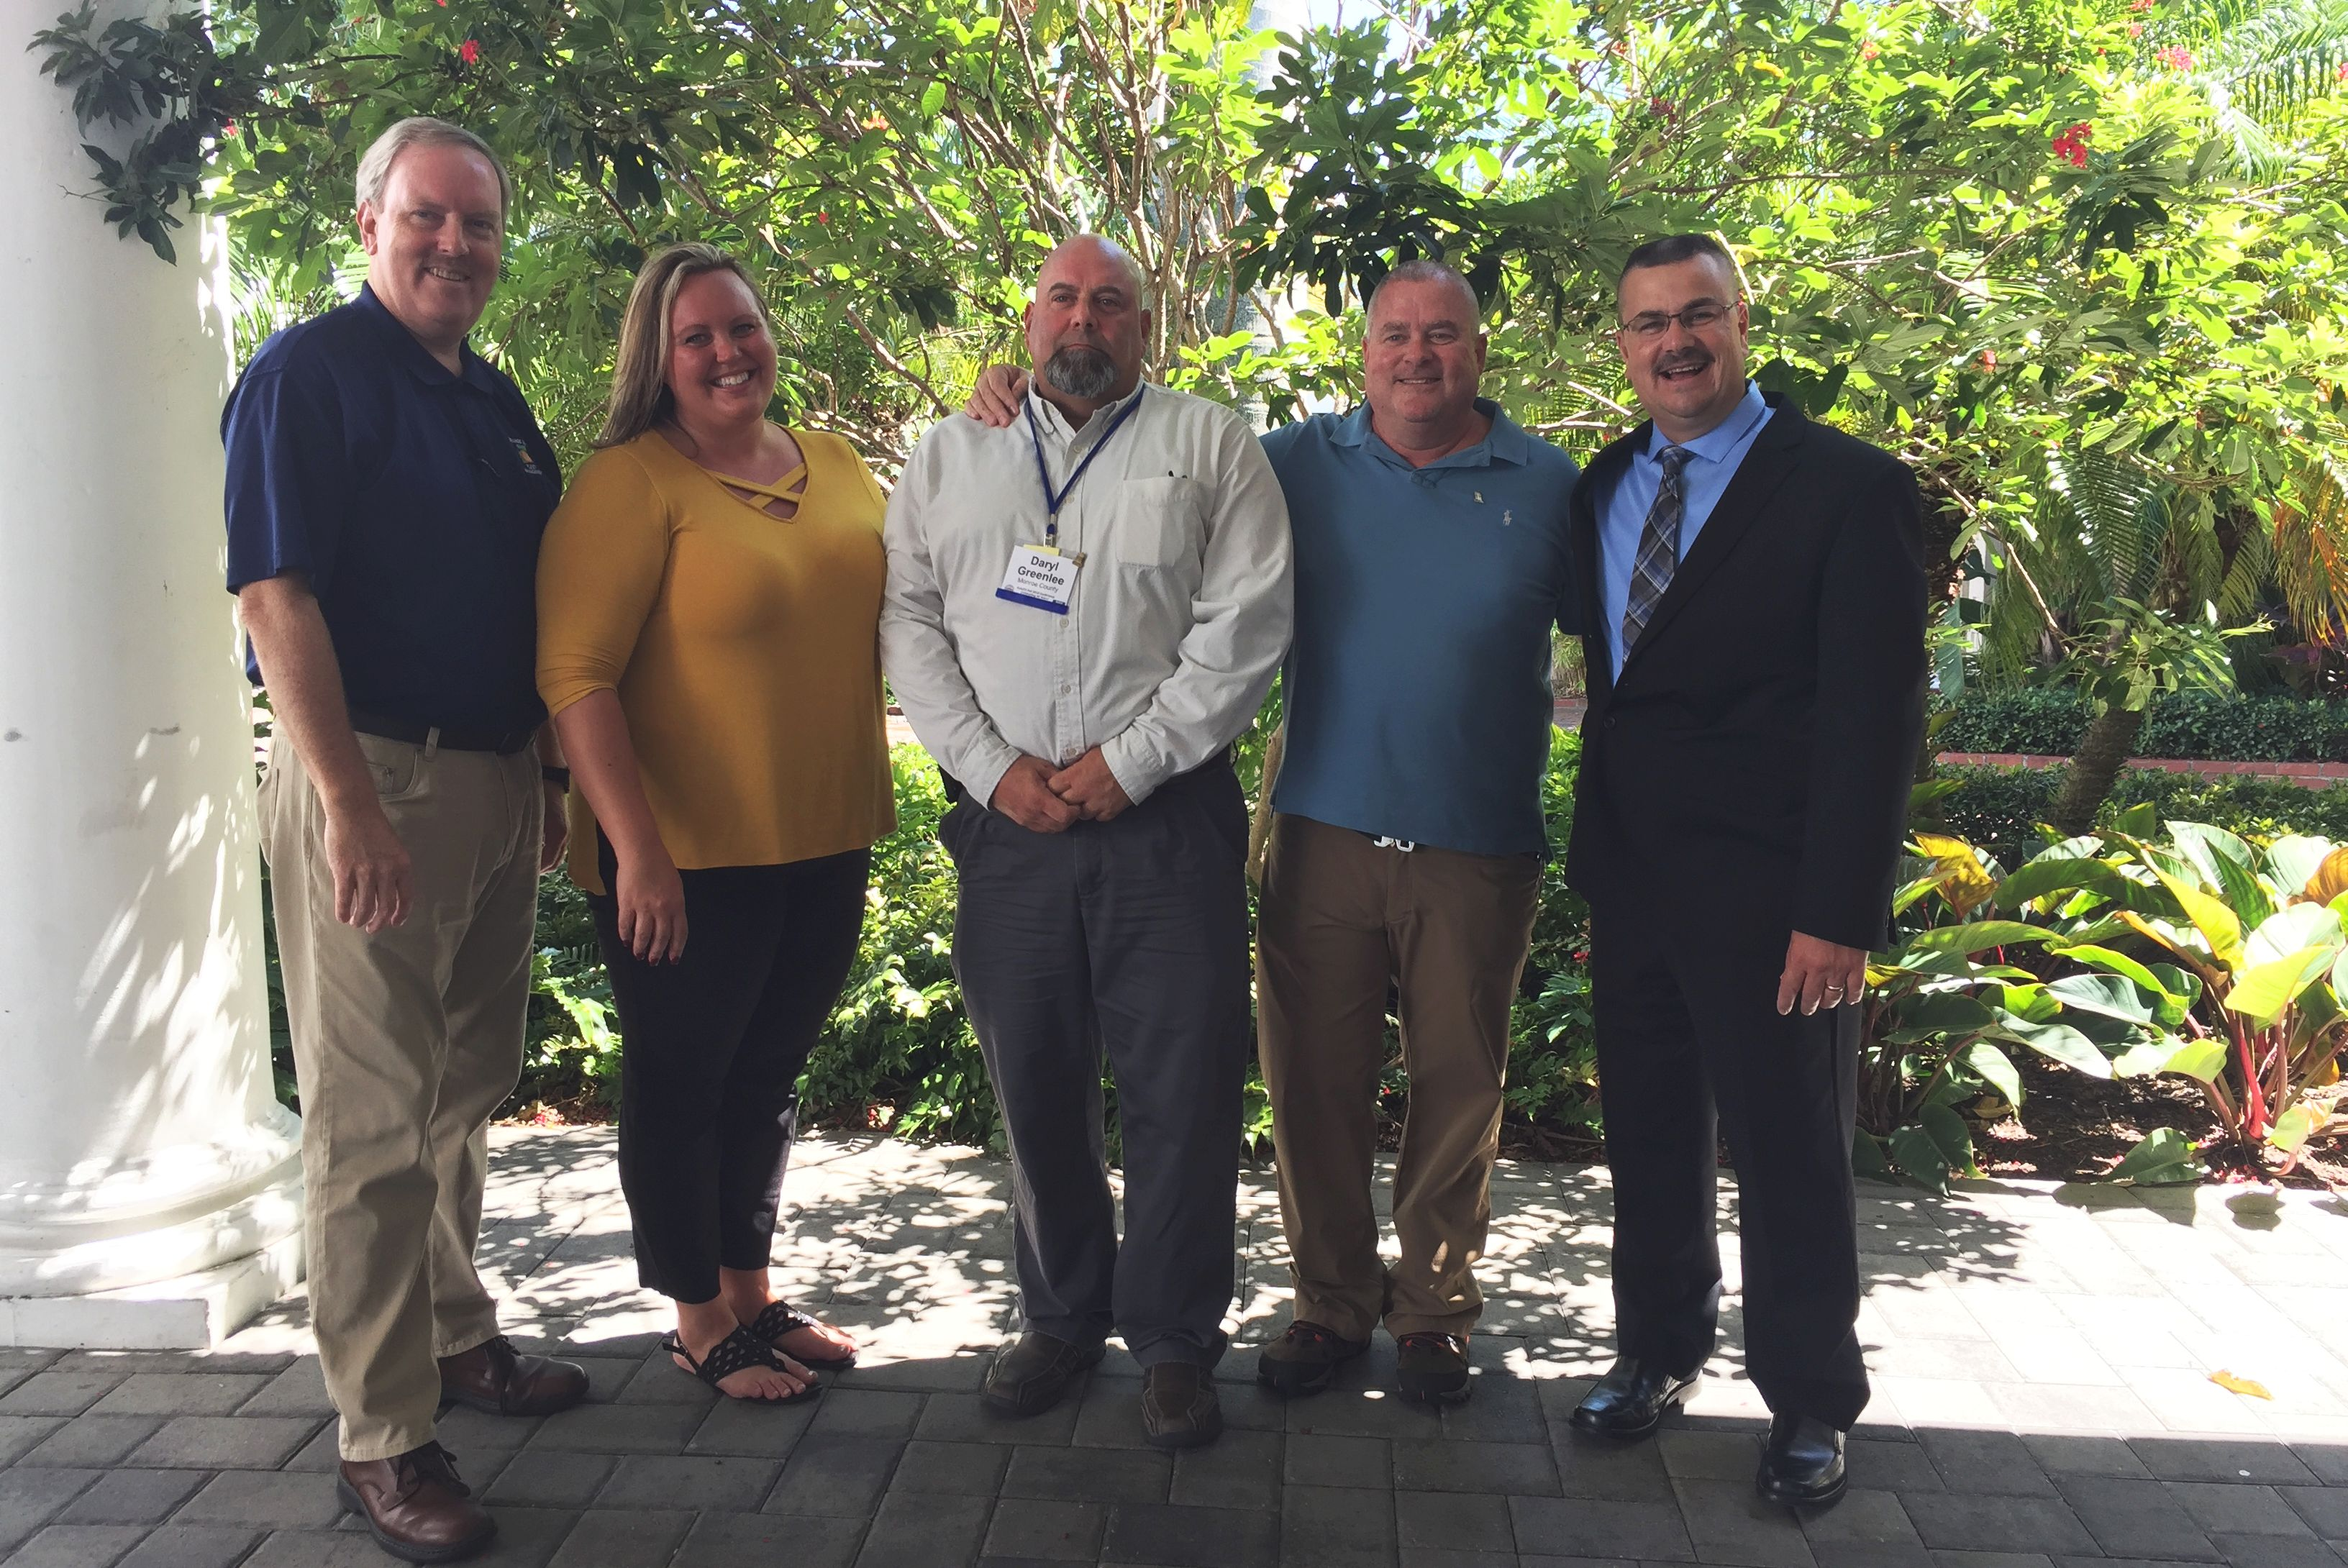 Fla. Association Celebrates 40 Years at Packed Conference